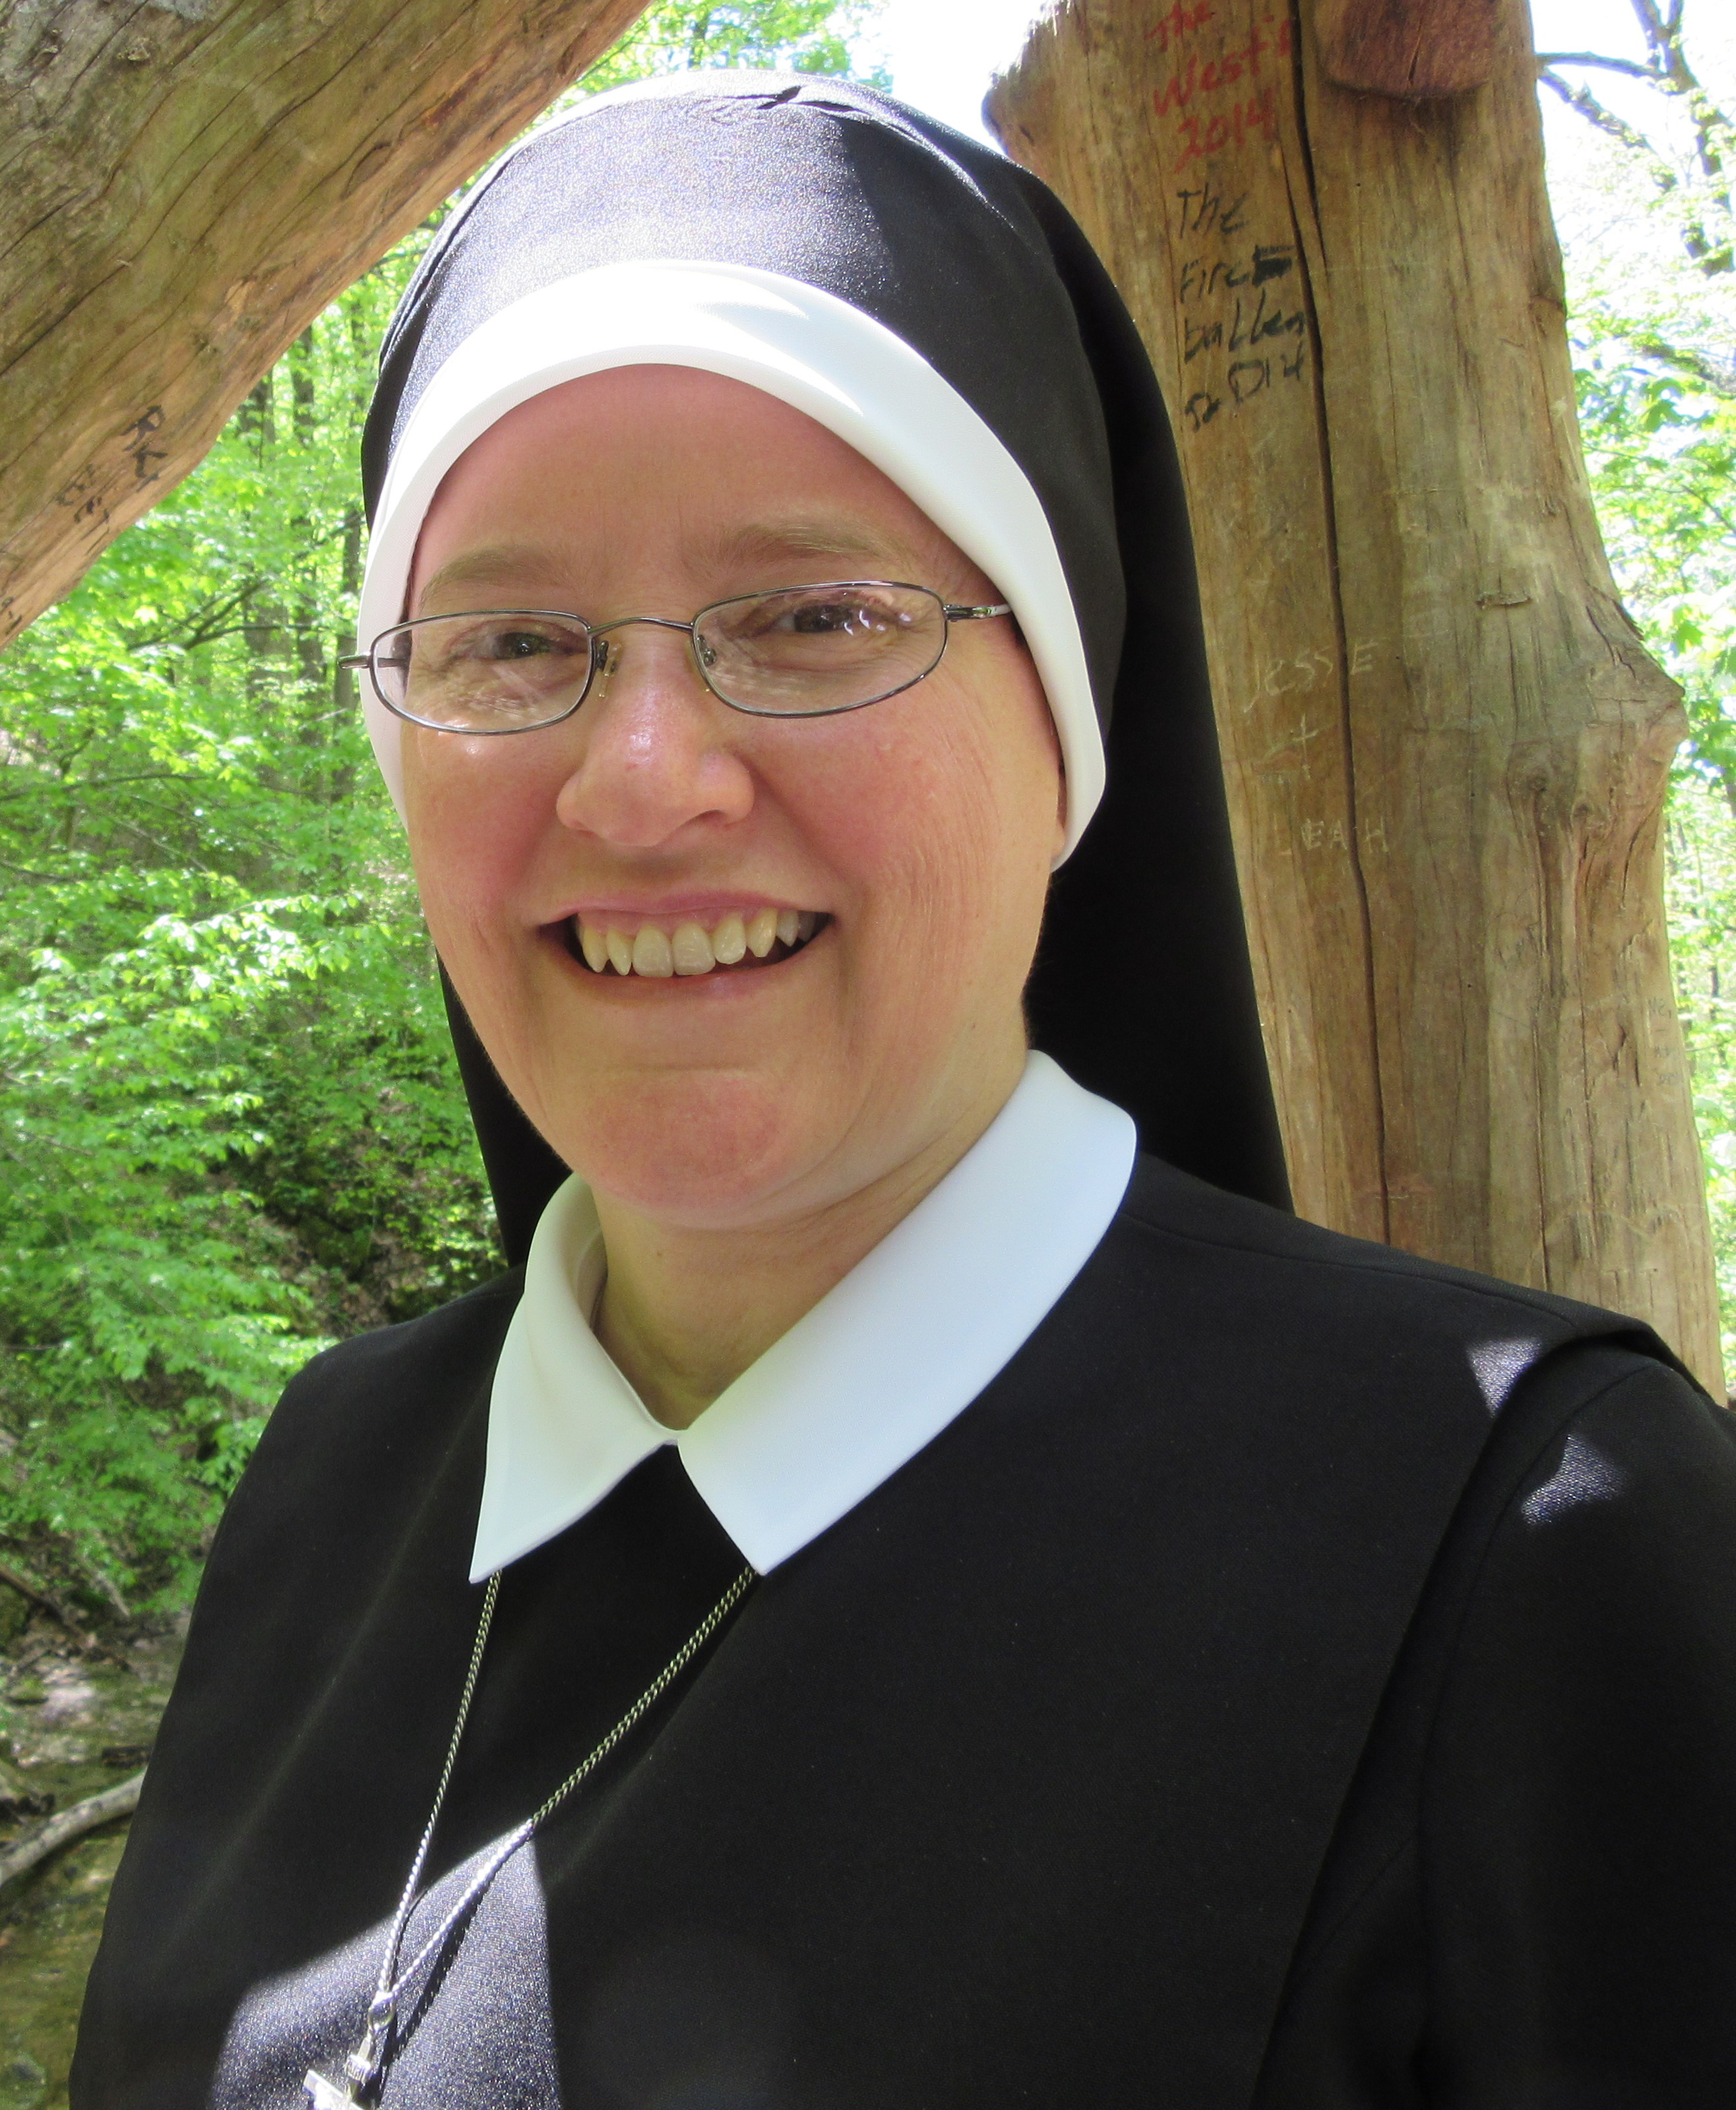 Mother Mary Christina, SSJW (Breakout Religious Speaker)  - Mother Mary Christina was elected the 3rd Superior General of the Sisters of St. Joseph the Worker after serving as Administrator and Director of Nursing at the community's nursing home.